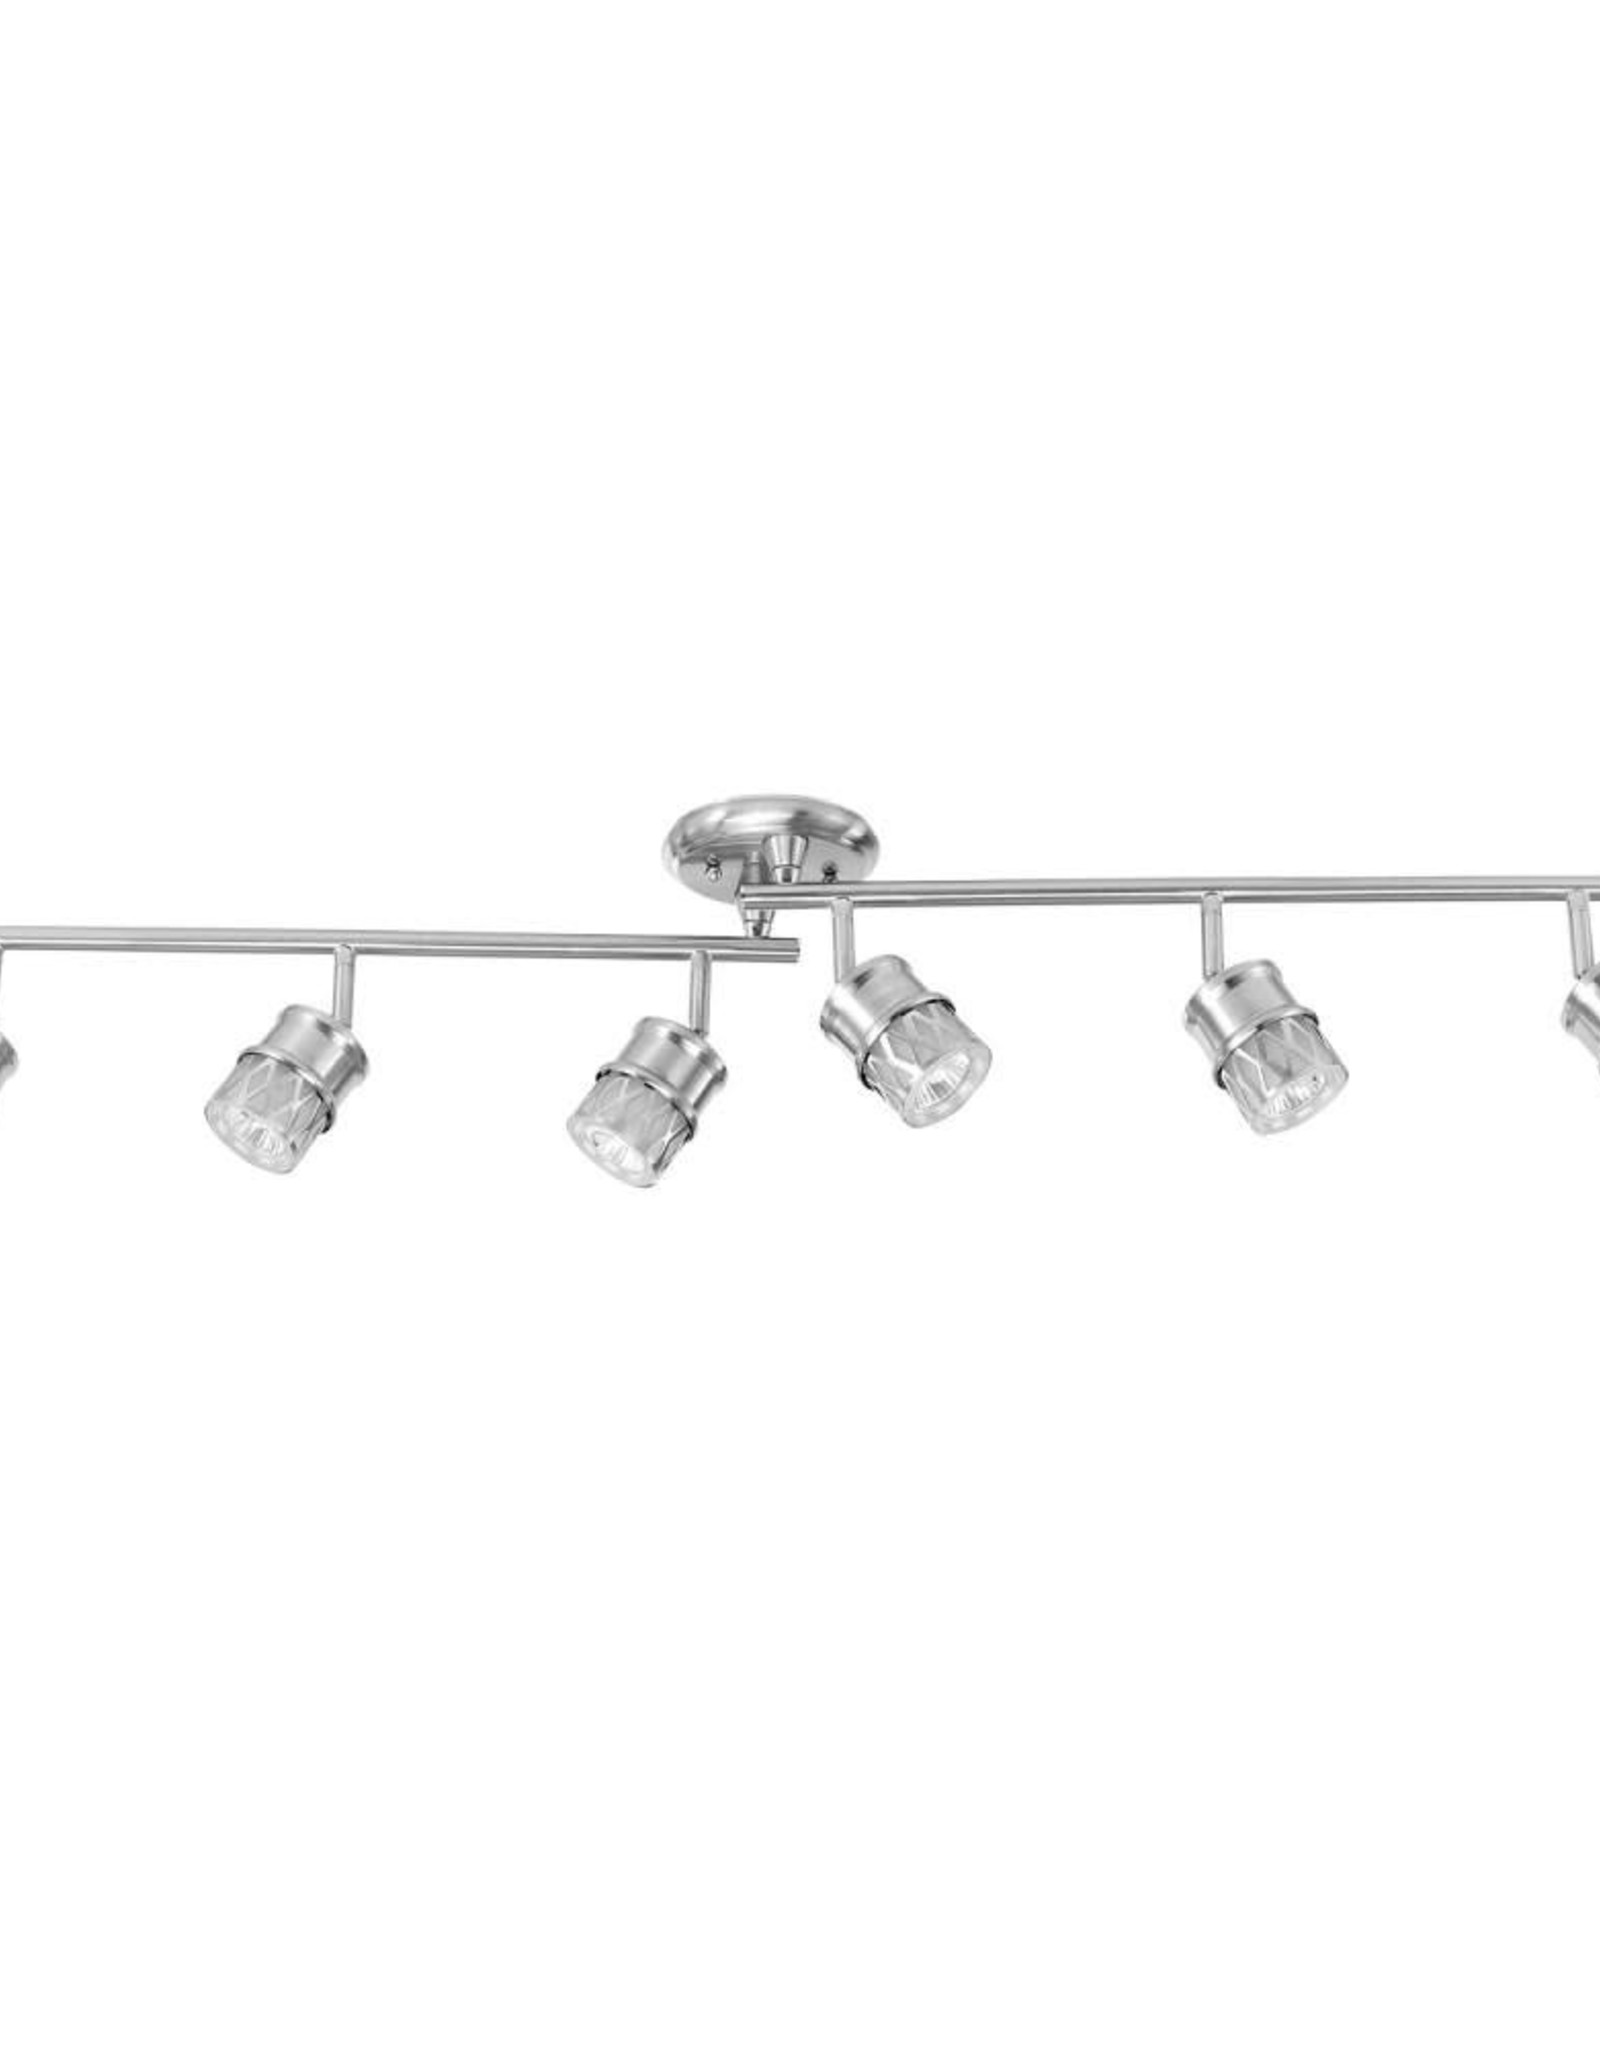 Globe Electric 4 ft. Kearney 6-Light Brushed Nickel Foldable Track Lighting, Bulbs Included